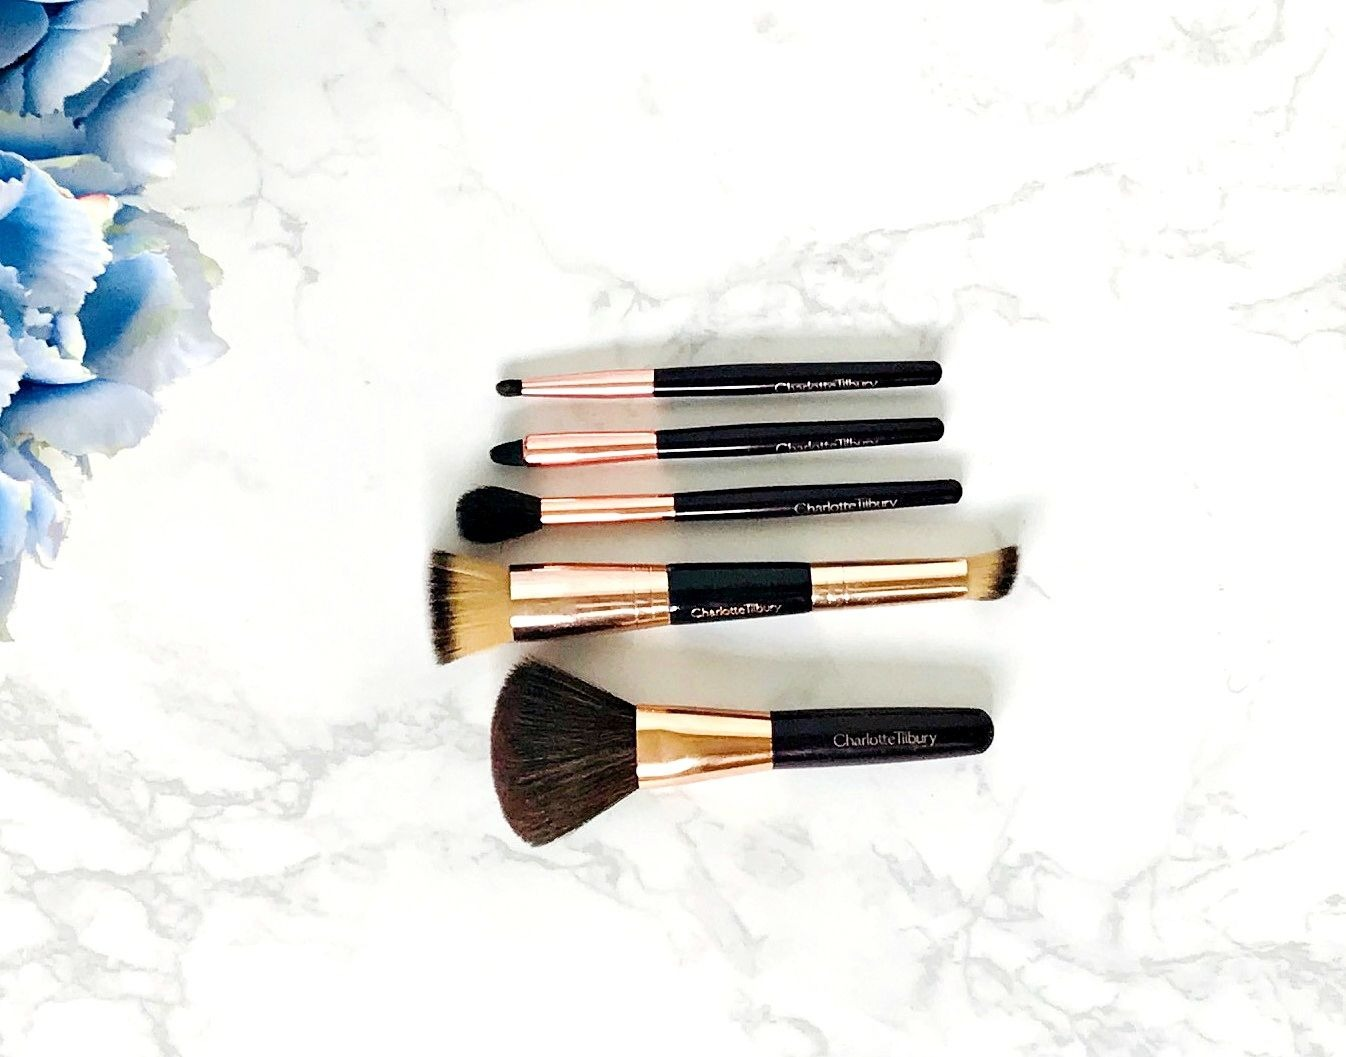 Charlotte Tilbury mini makeup brushes review